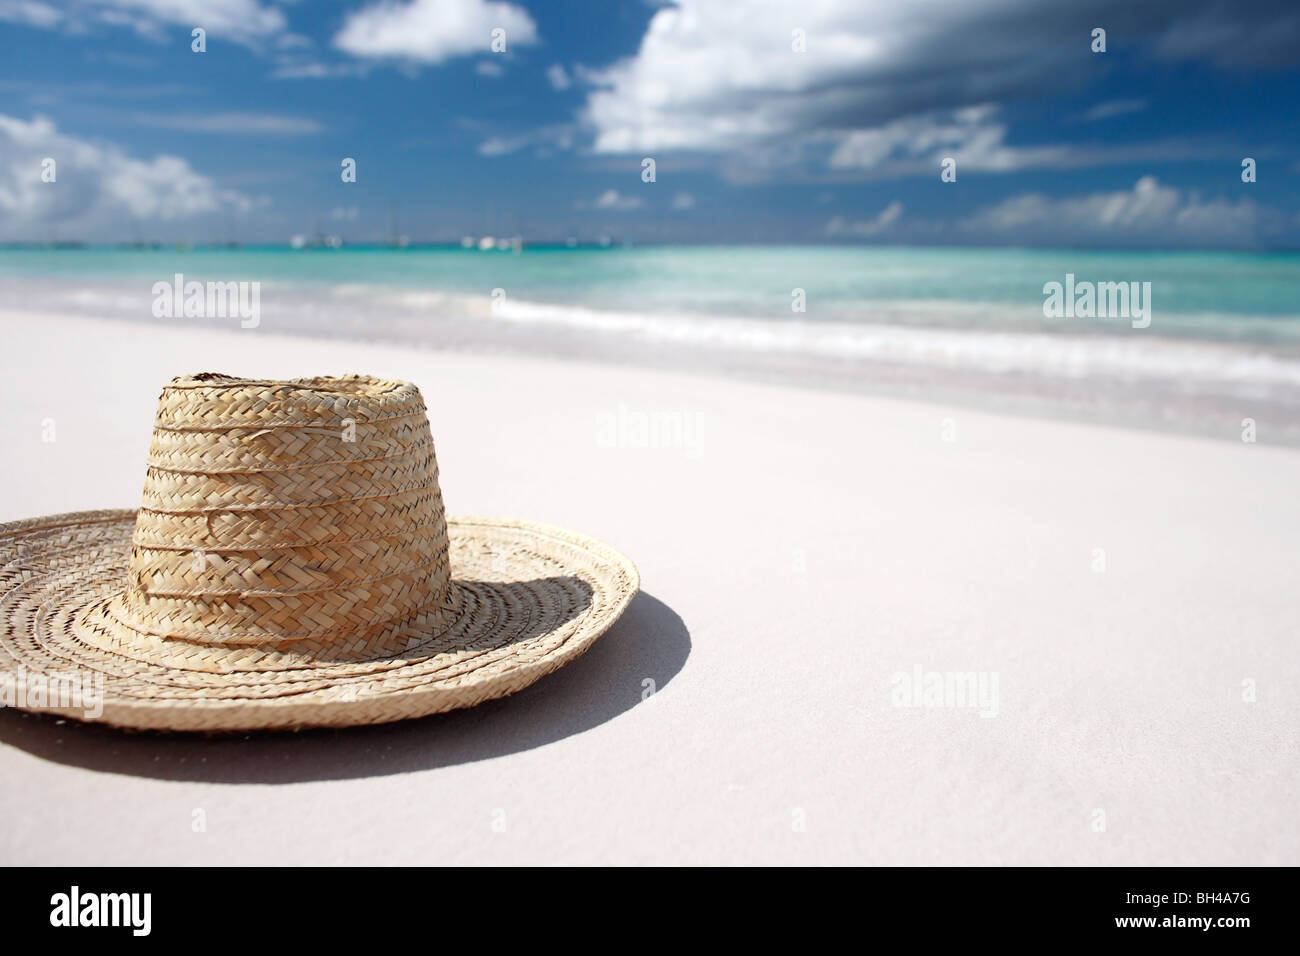 A straw sun hat lying on a white sandy tropical deserted beach - Stock Image